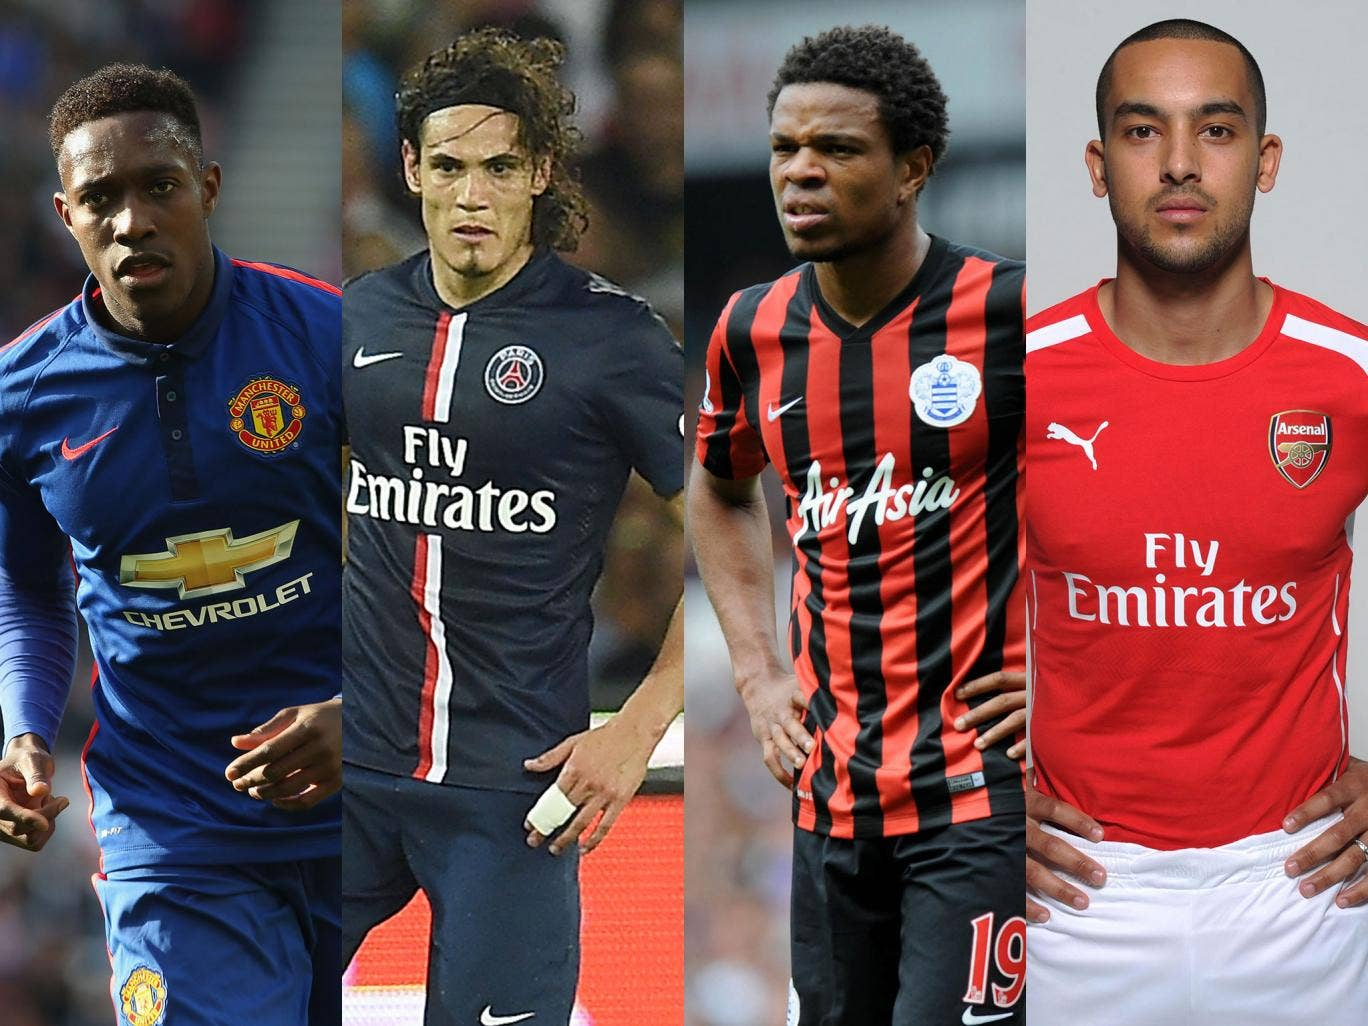 Could Arsenal manager Arsene Wenger turn to Danny Welbeck, Edinson Cavani or Loic Remy to replace Olivier Giroud?